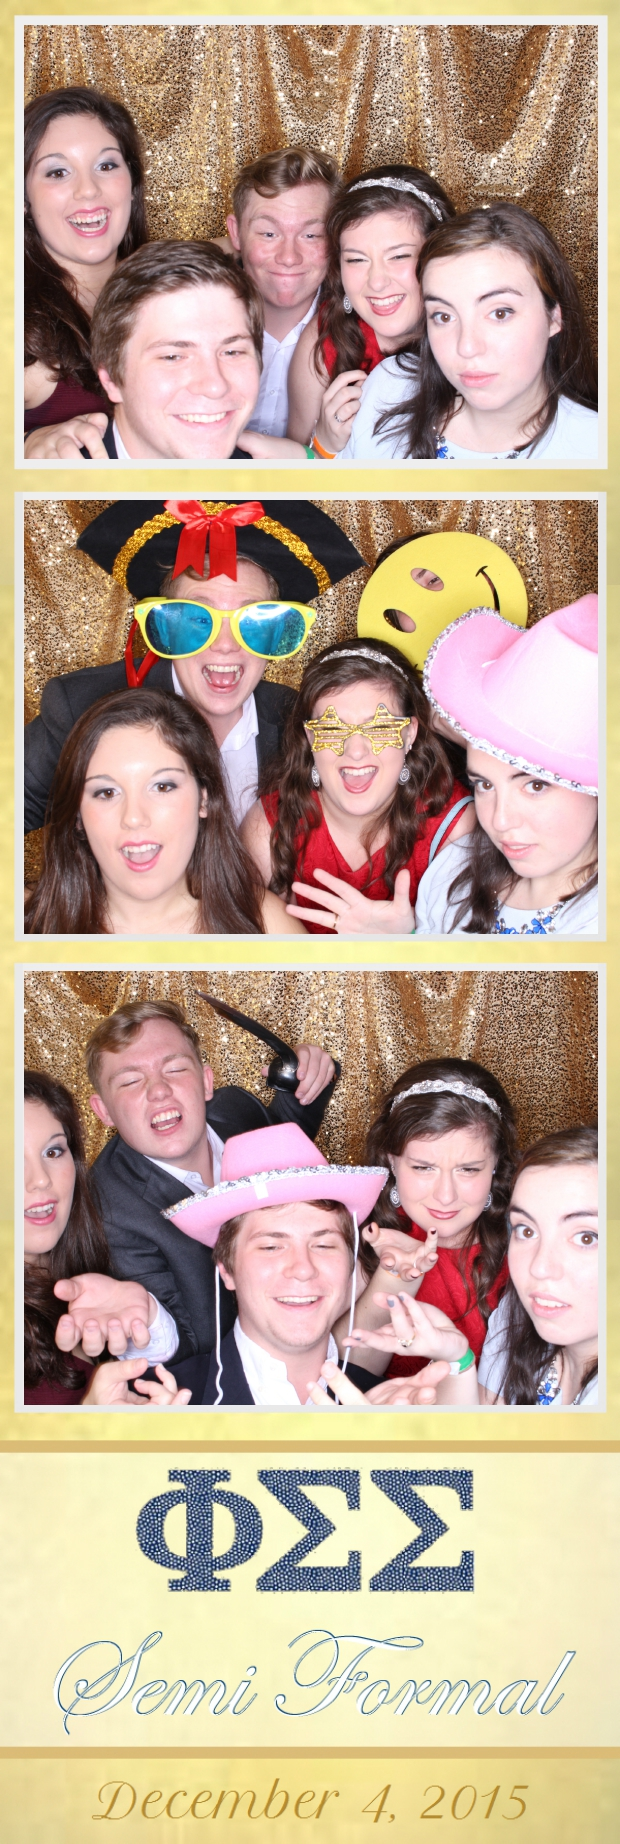 Guest House Events Photo Booth Phi Sigma Sigma Semi Formal (42).jpg